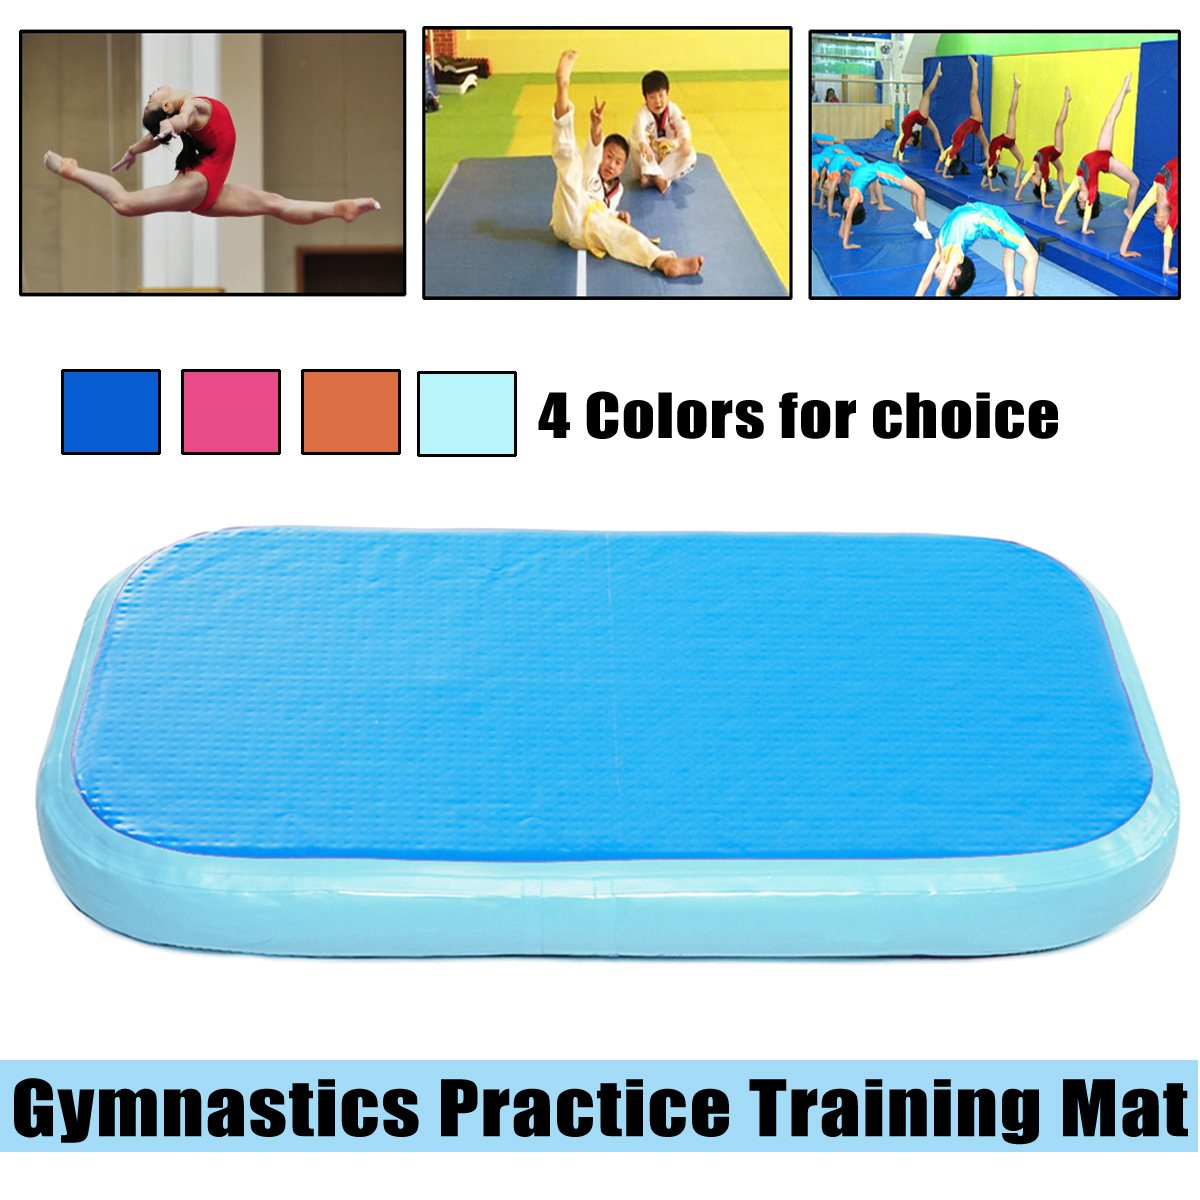 100x60x20cm Inflatable Air Tumbling Track Roller Home Training Matfor Gymnastics Gym Exercise Mat Air Track Tumbling Mat 8m gymnastics air track fitness exercise gym air tumbling mat training inflatable track floor home gymnastic high quality